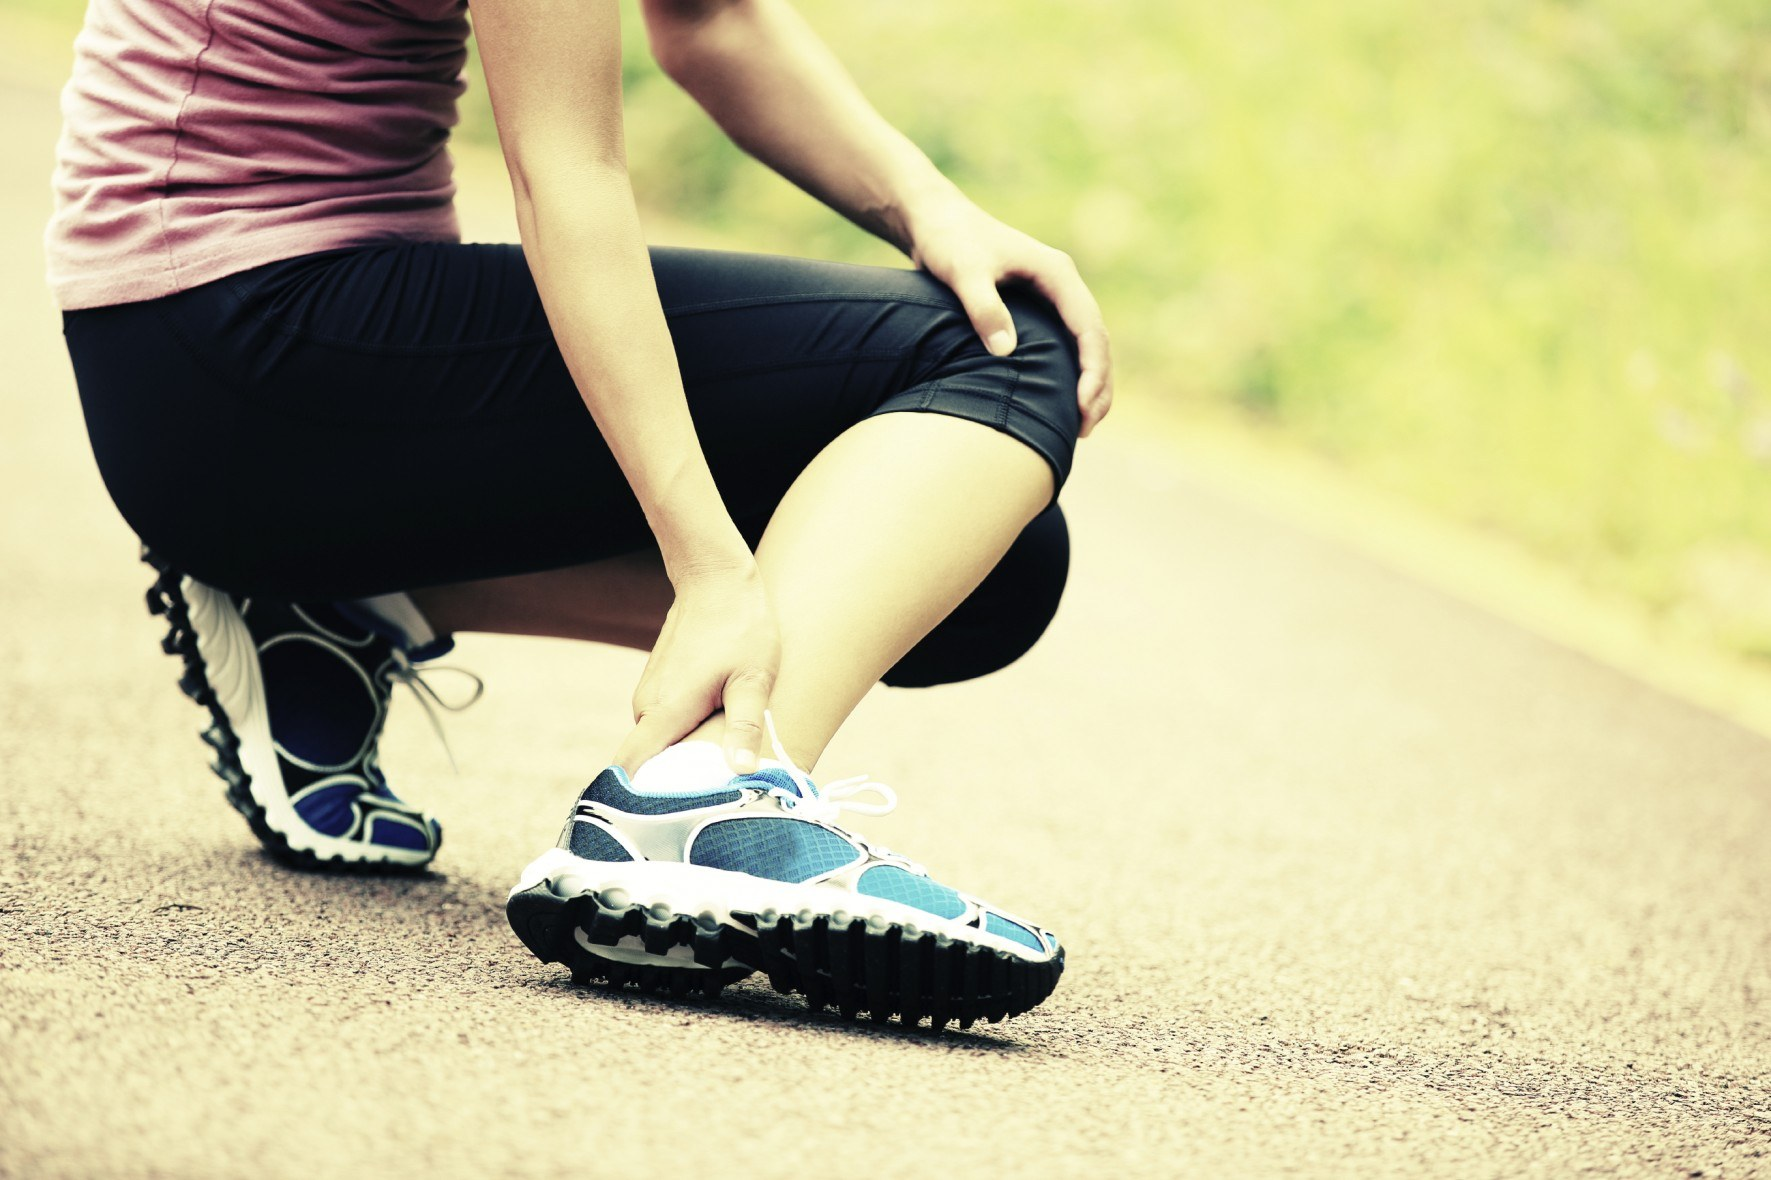 Injury Prevention for Aging Athletes